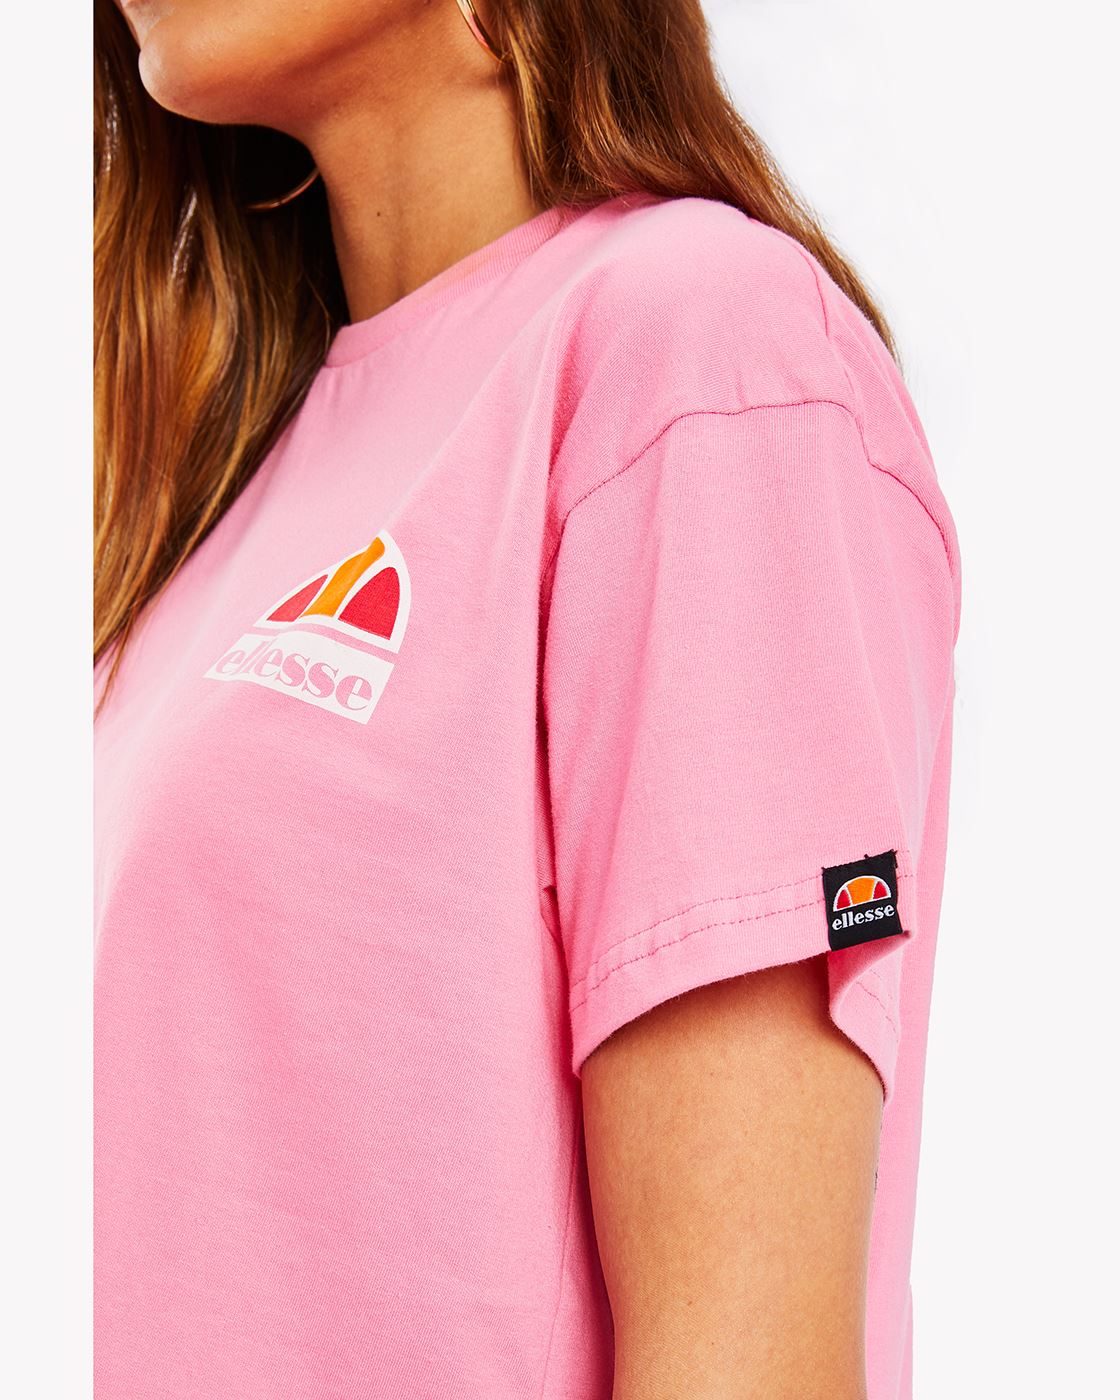 Ellesse-End-of-Line-Clearance-Sale-Bargain-Womens-Tops-T-Shirts-Free-UK-Ship thumbnail 39